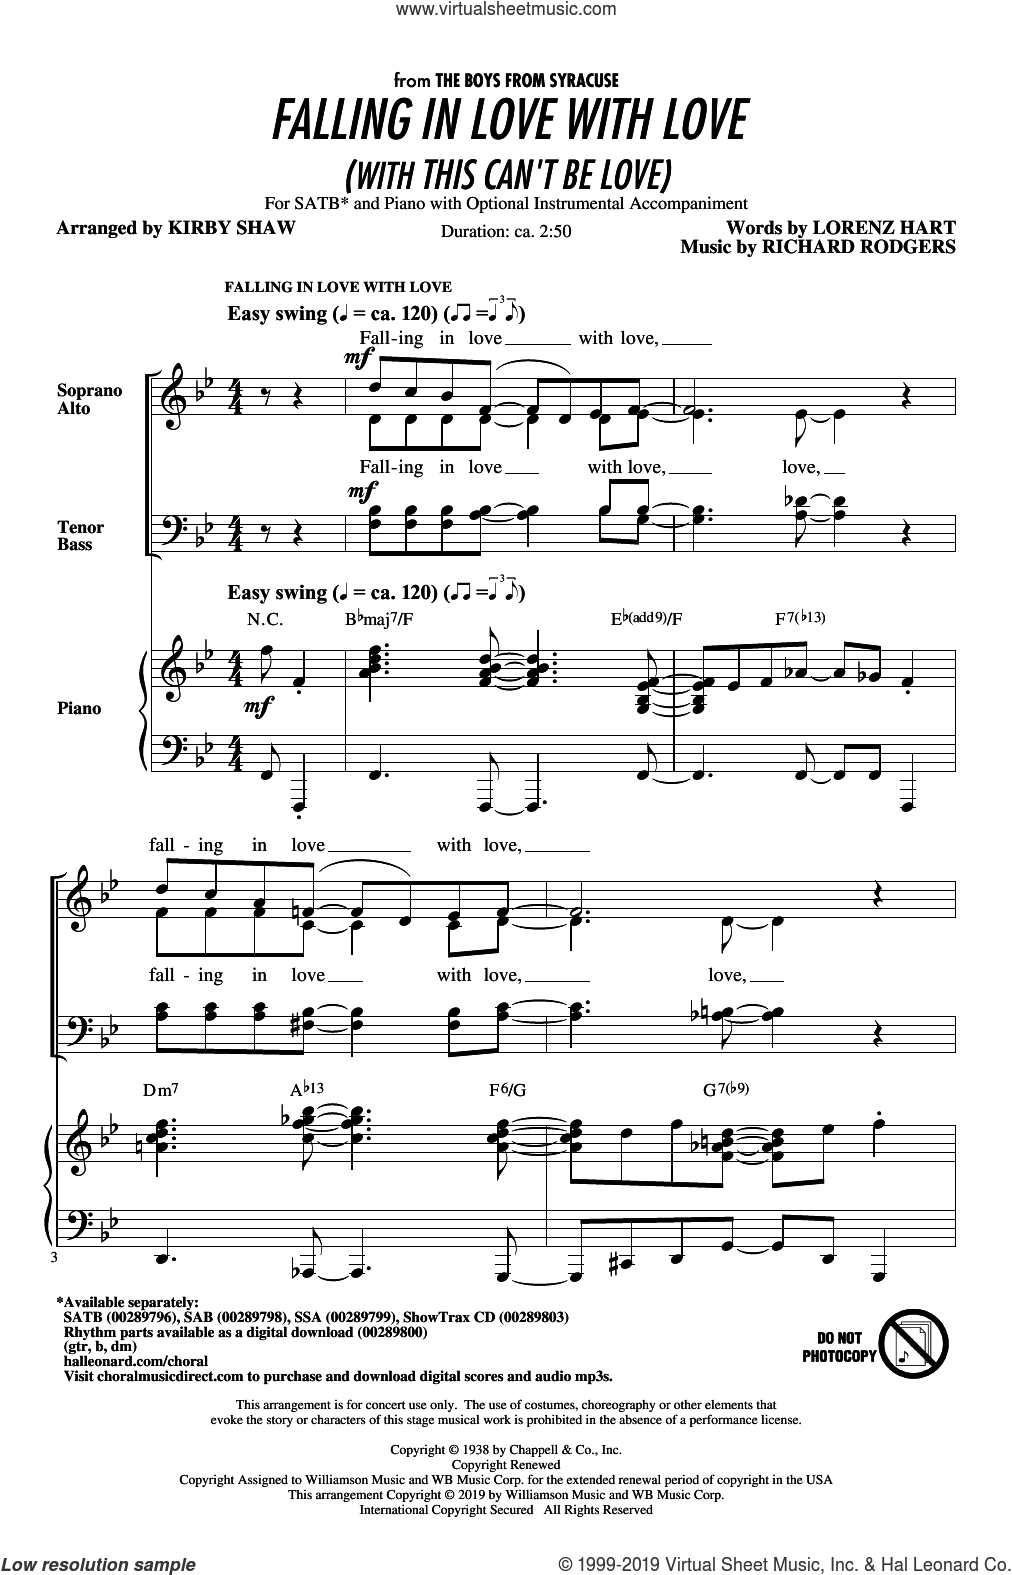 Falling In Love With Love (with This Can't Be Love) (arr. Kirby Shaw) sheet music for choir (SATB: soprano, alto, tenor, bass) by Rodgers & Hart, Kirby Shaw, Lorenz Hart and Richard Rodgers, intermediate skill level